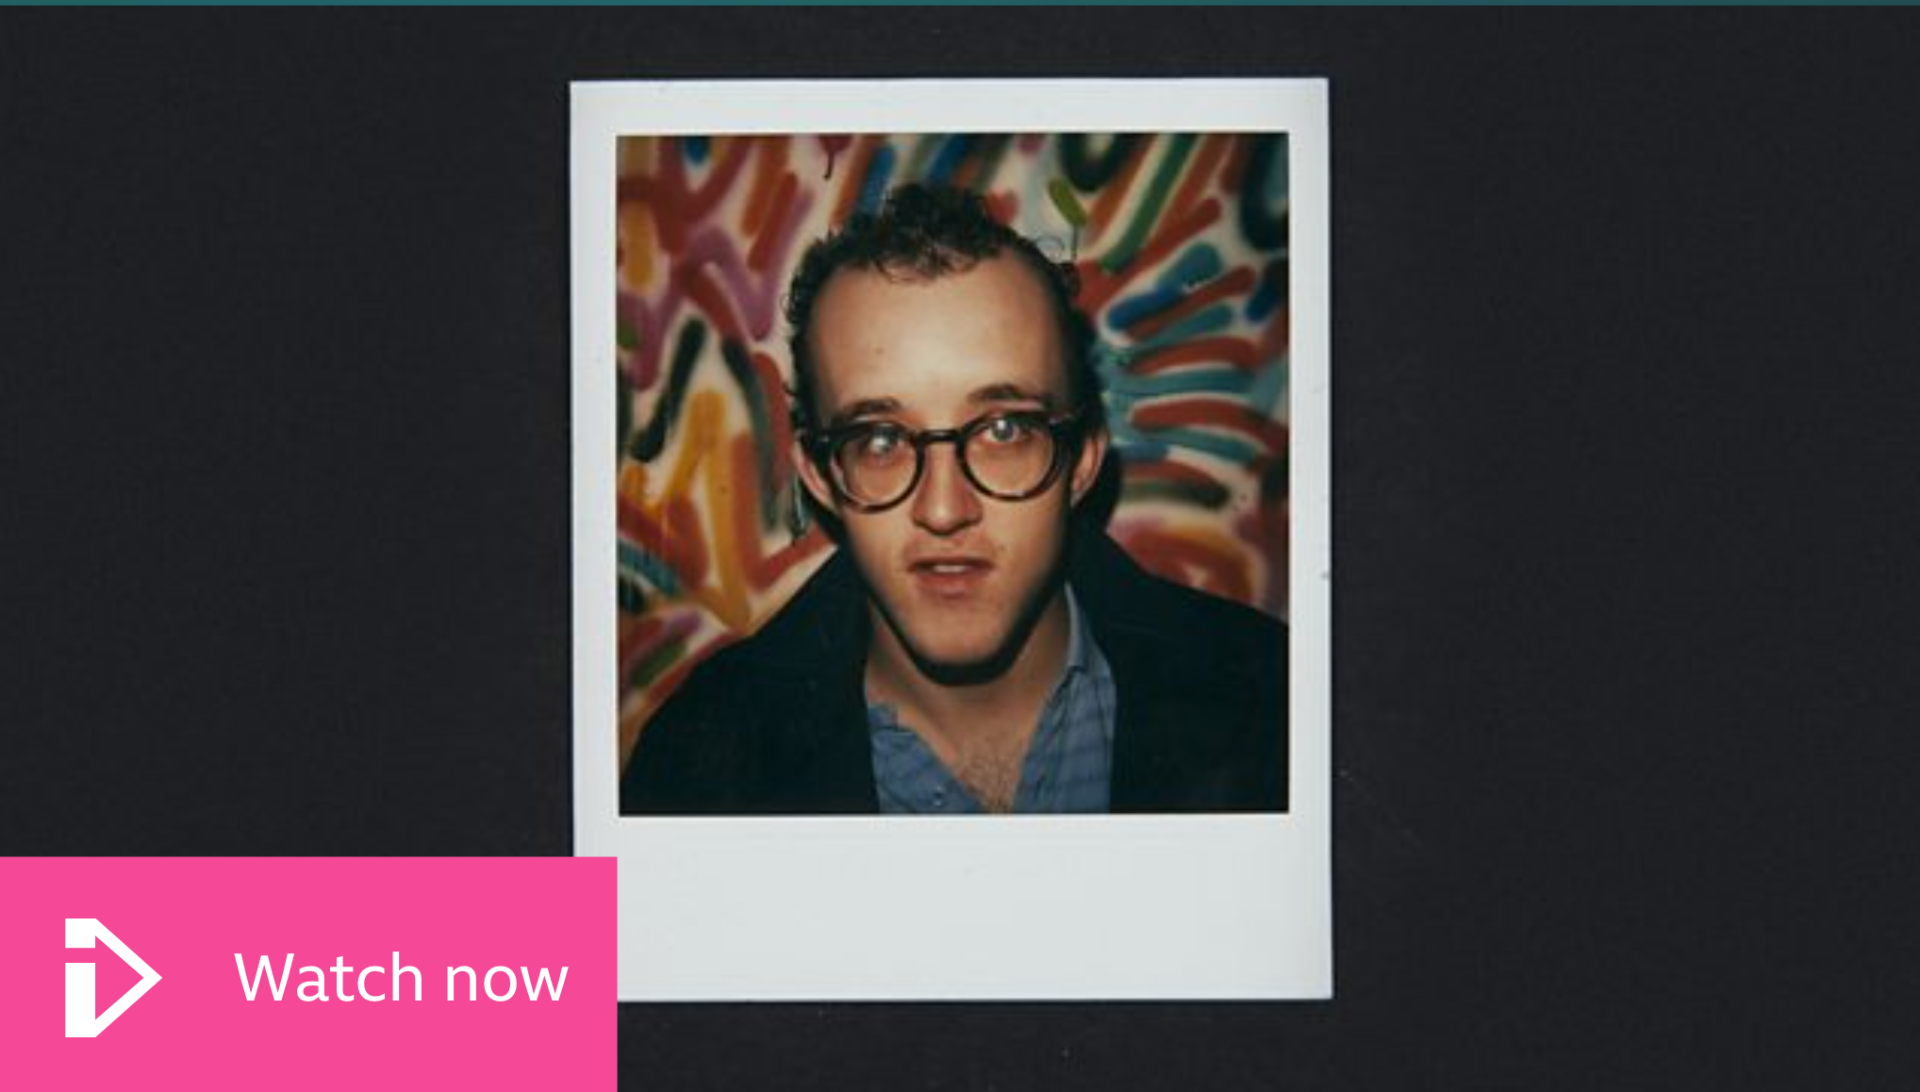 Defected Keith Haring